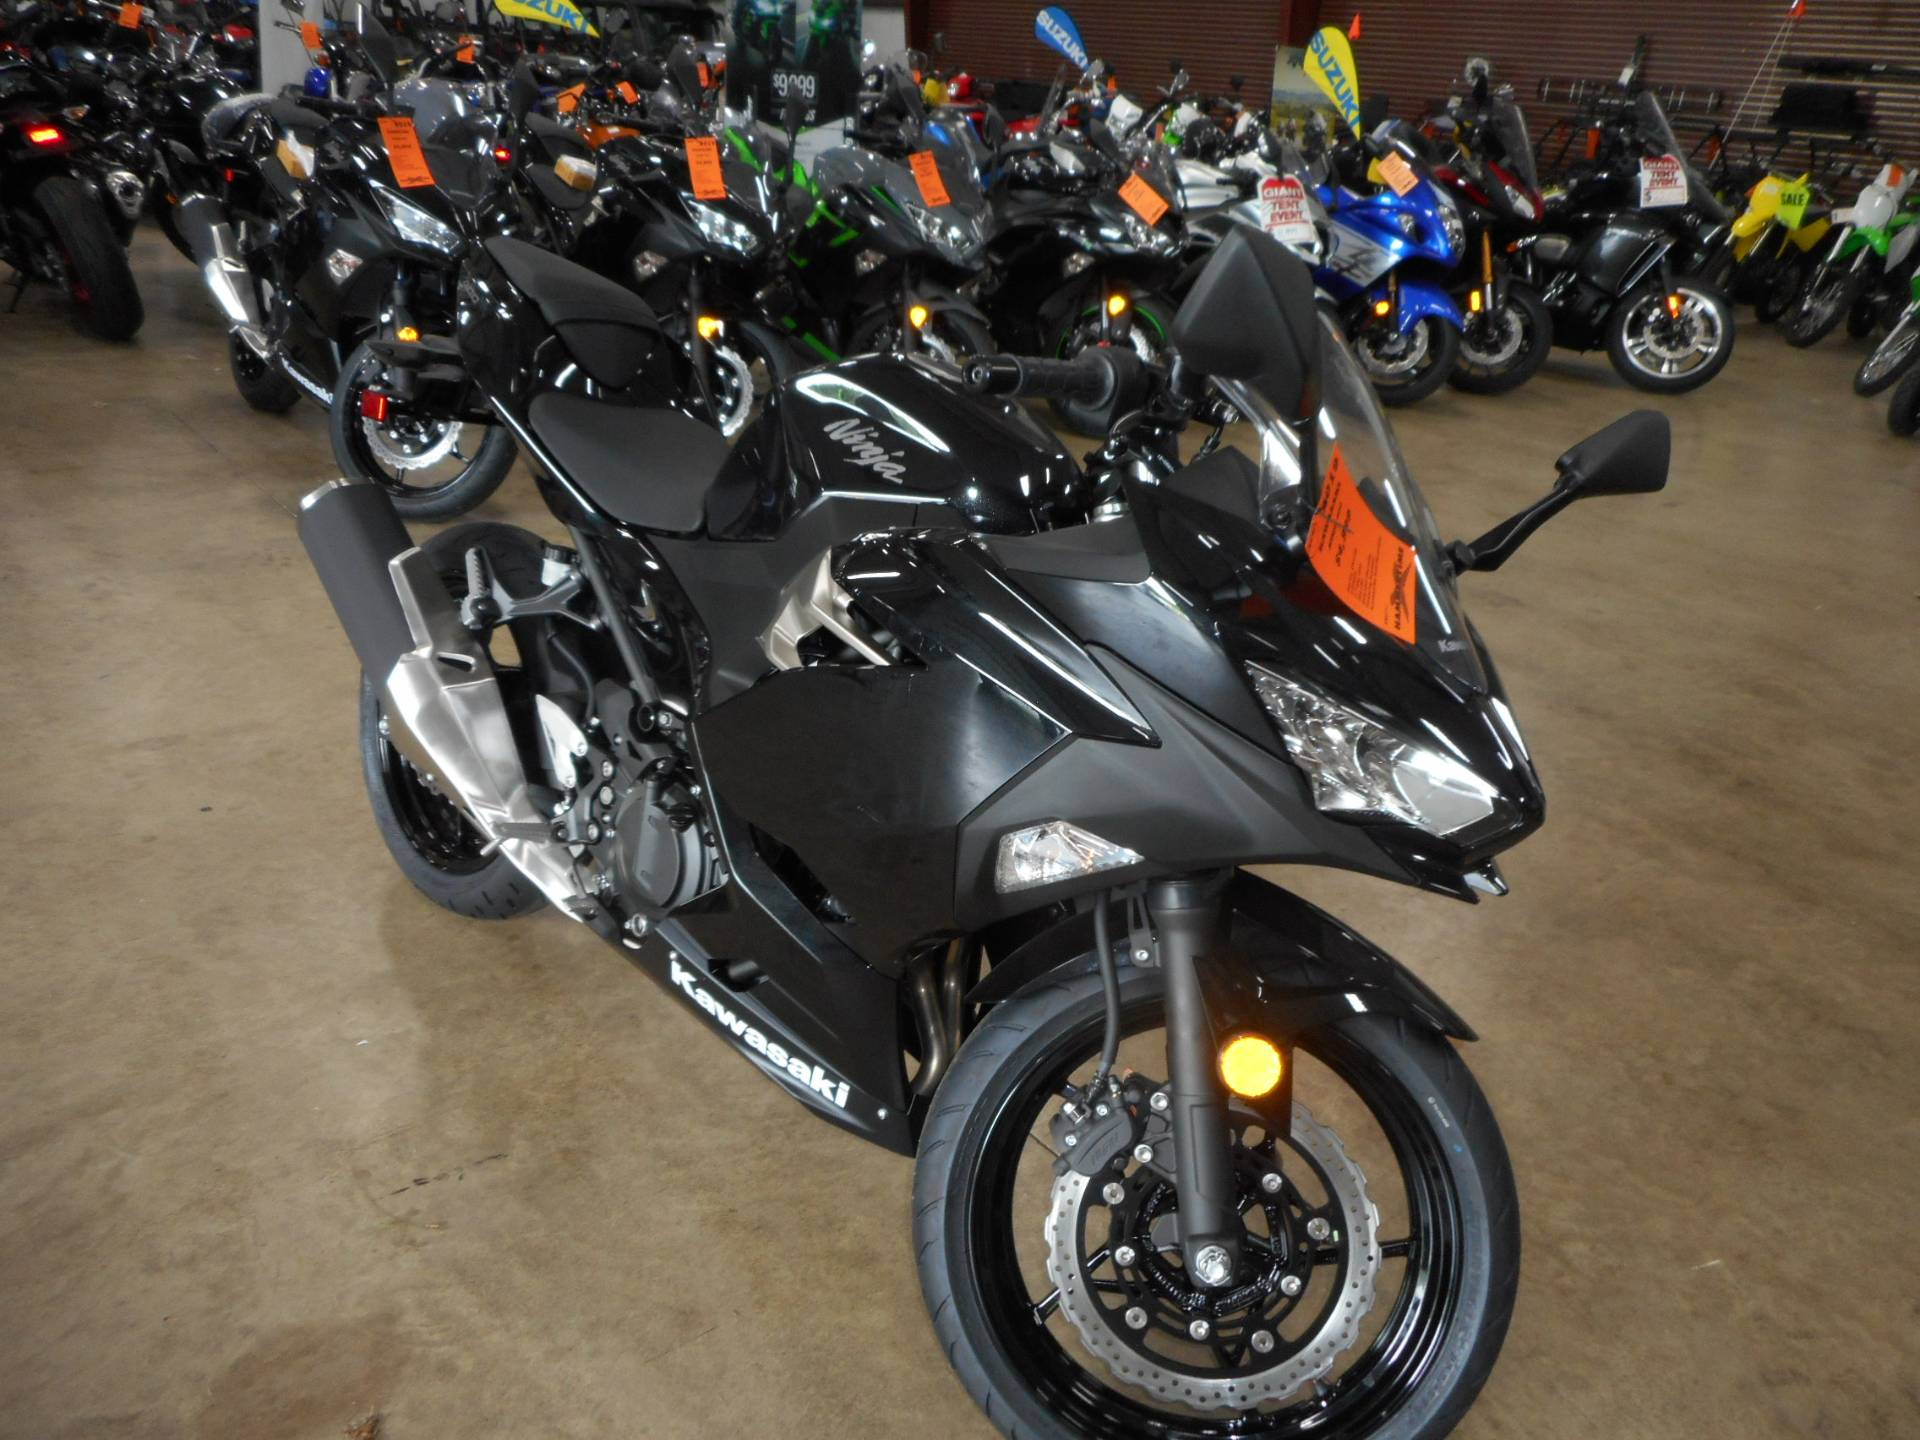 2019 Kawasaki Ninja 400 in Belvidere, Illinois - Photo 5